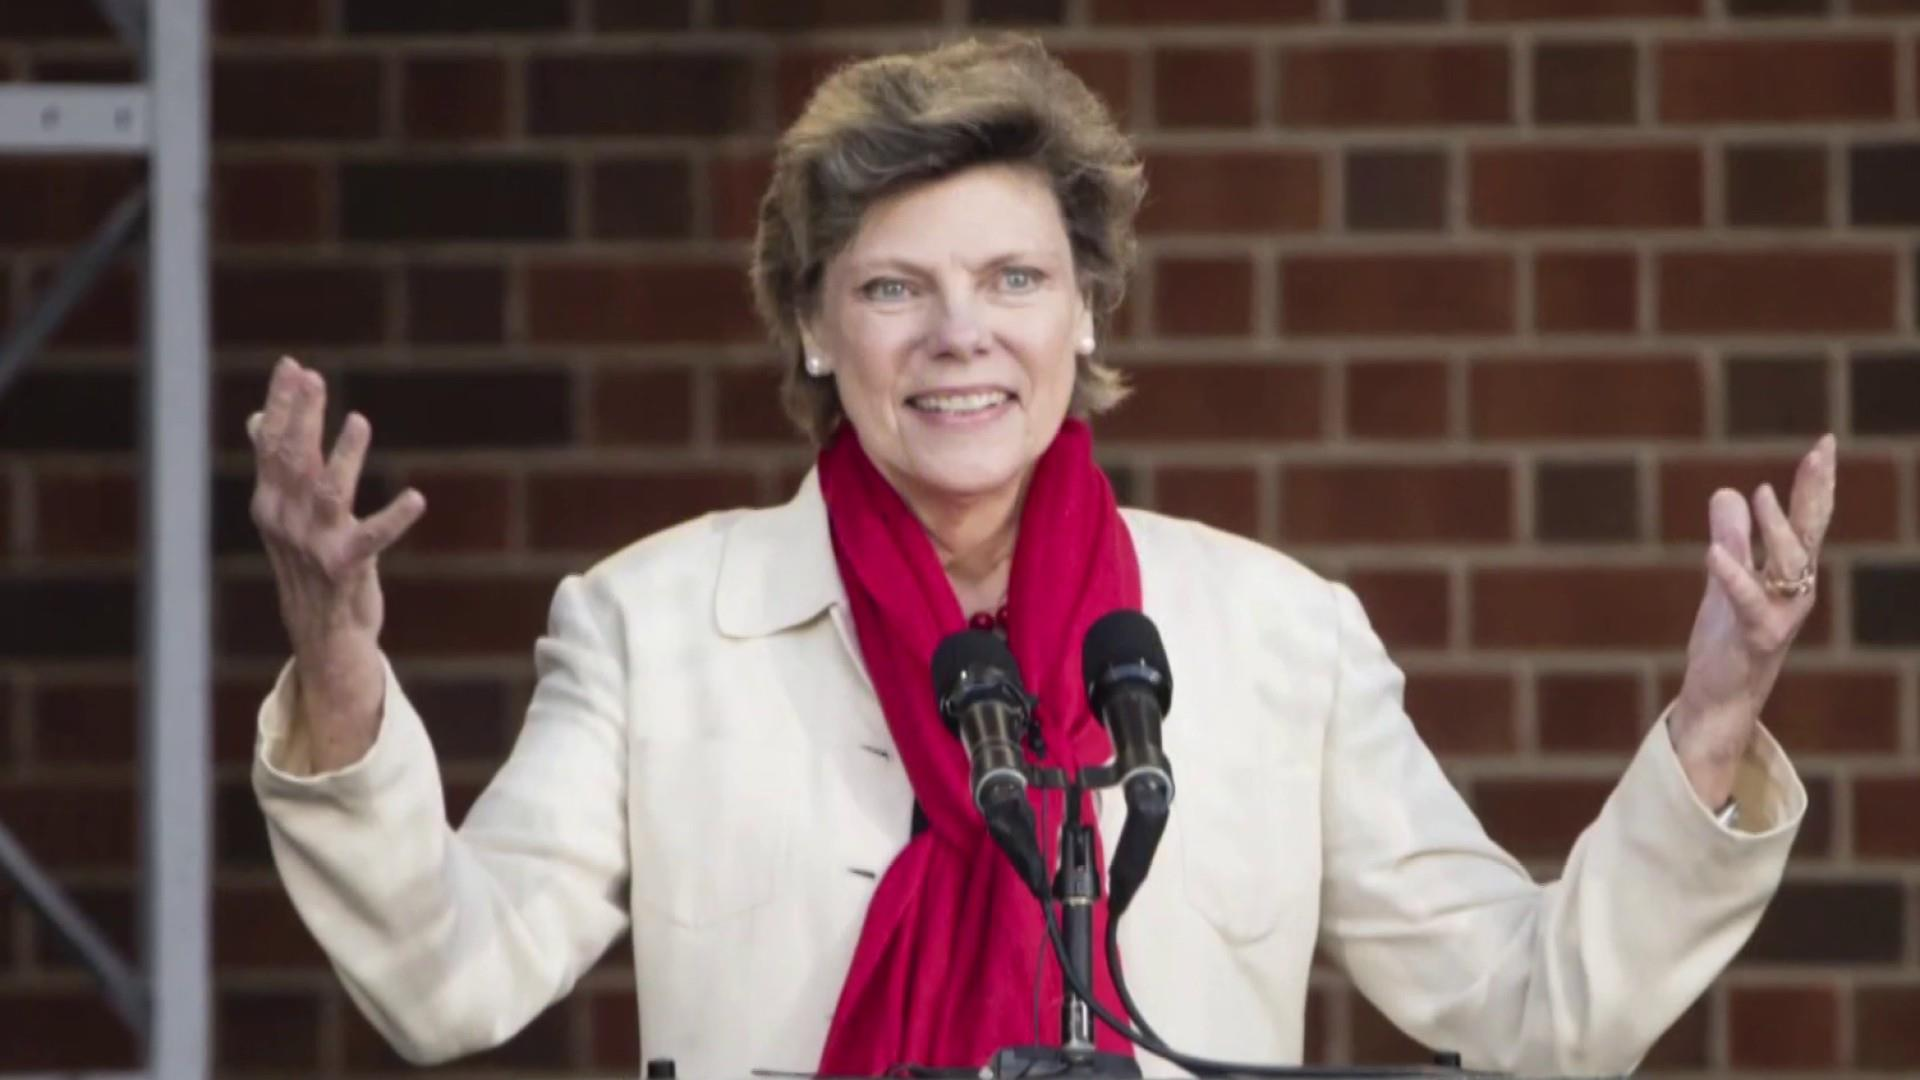 Remembering the life and legacy of Cokie Roberts